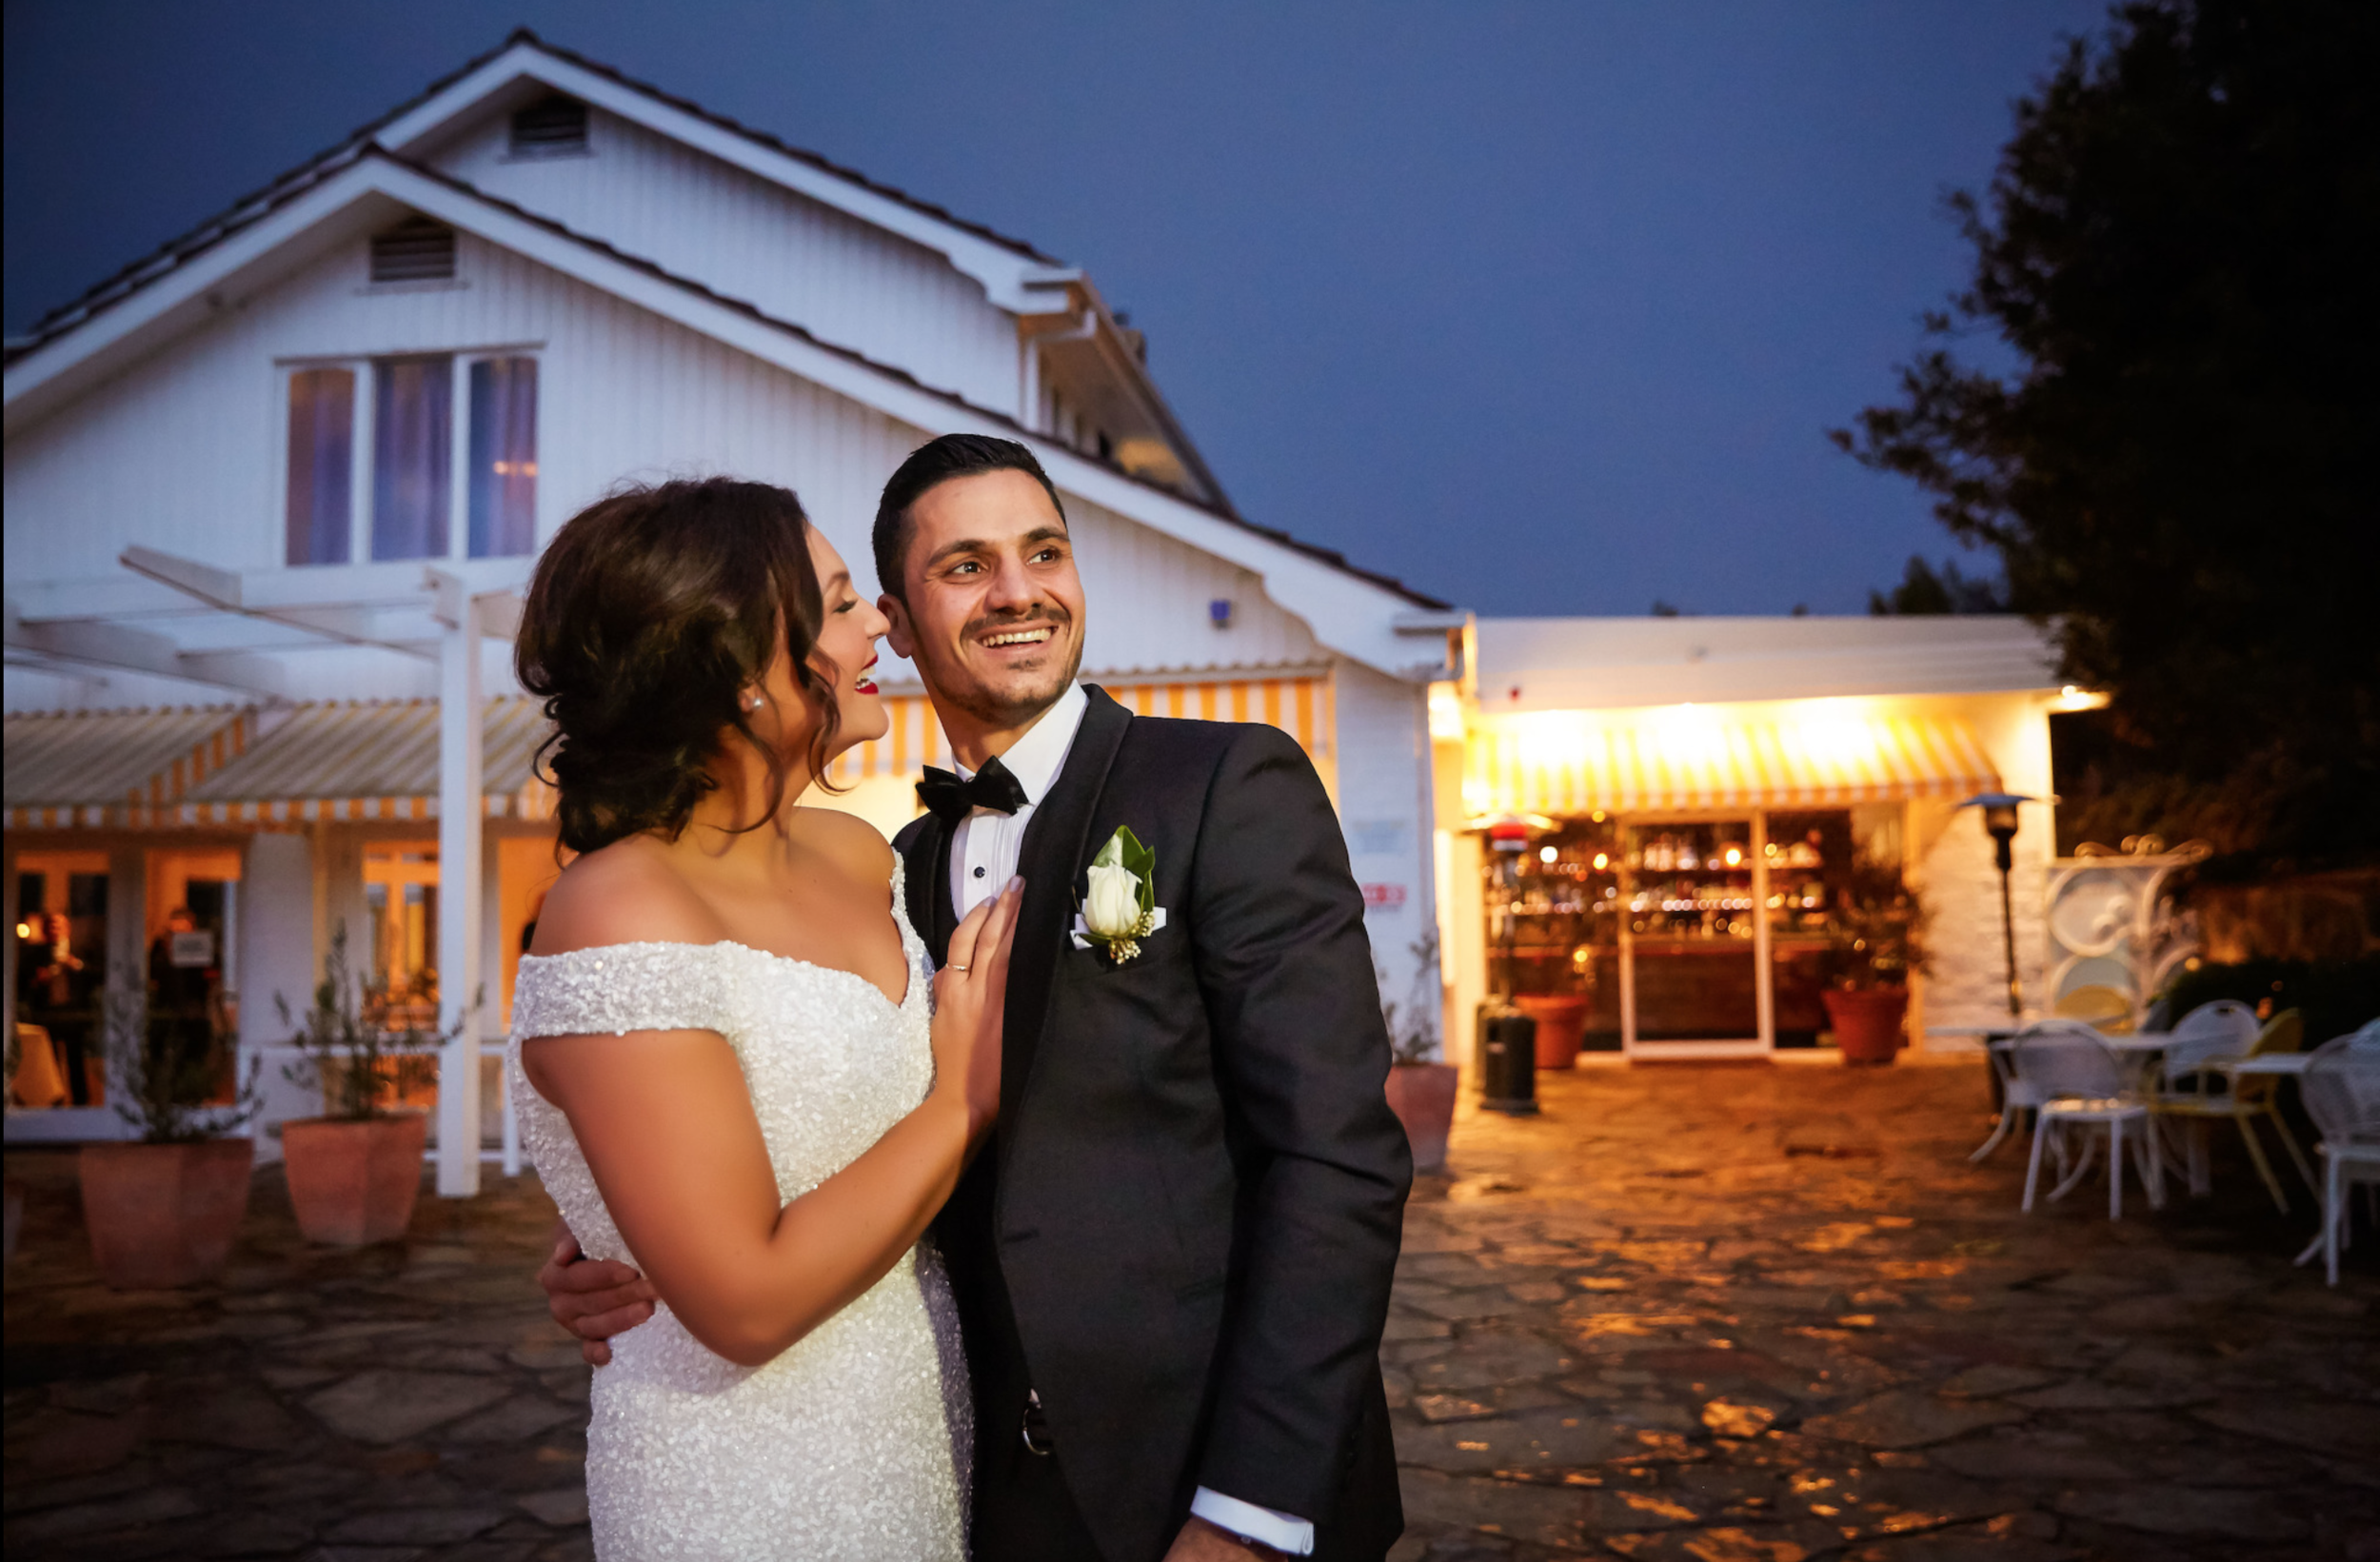 Isabella & Christian / Photography by Vladimir Photography